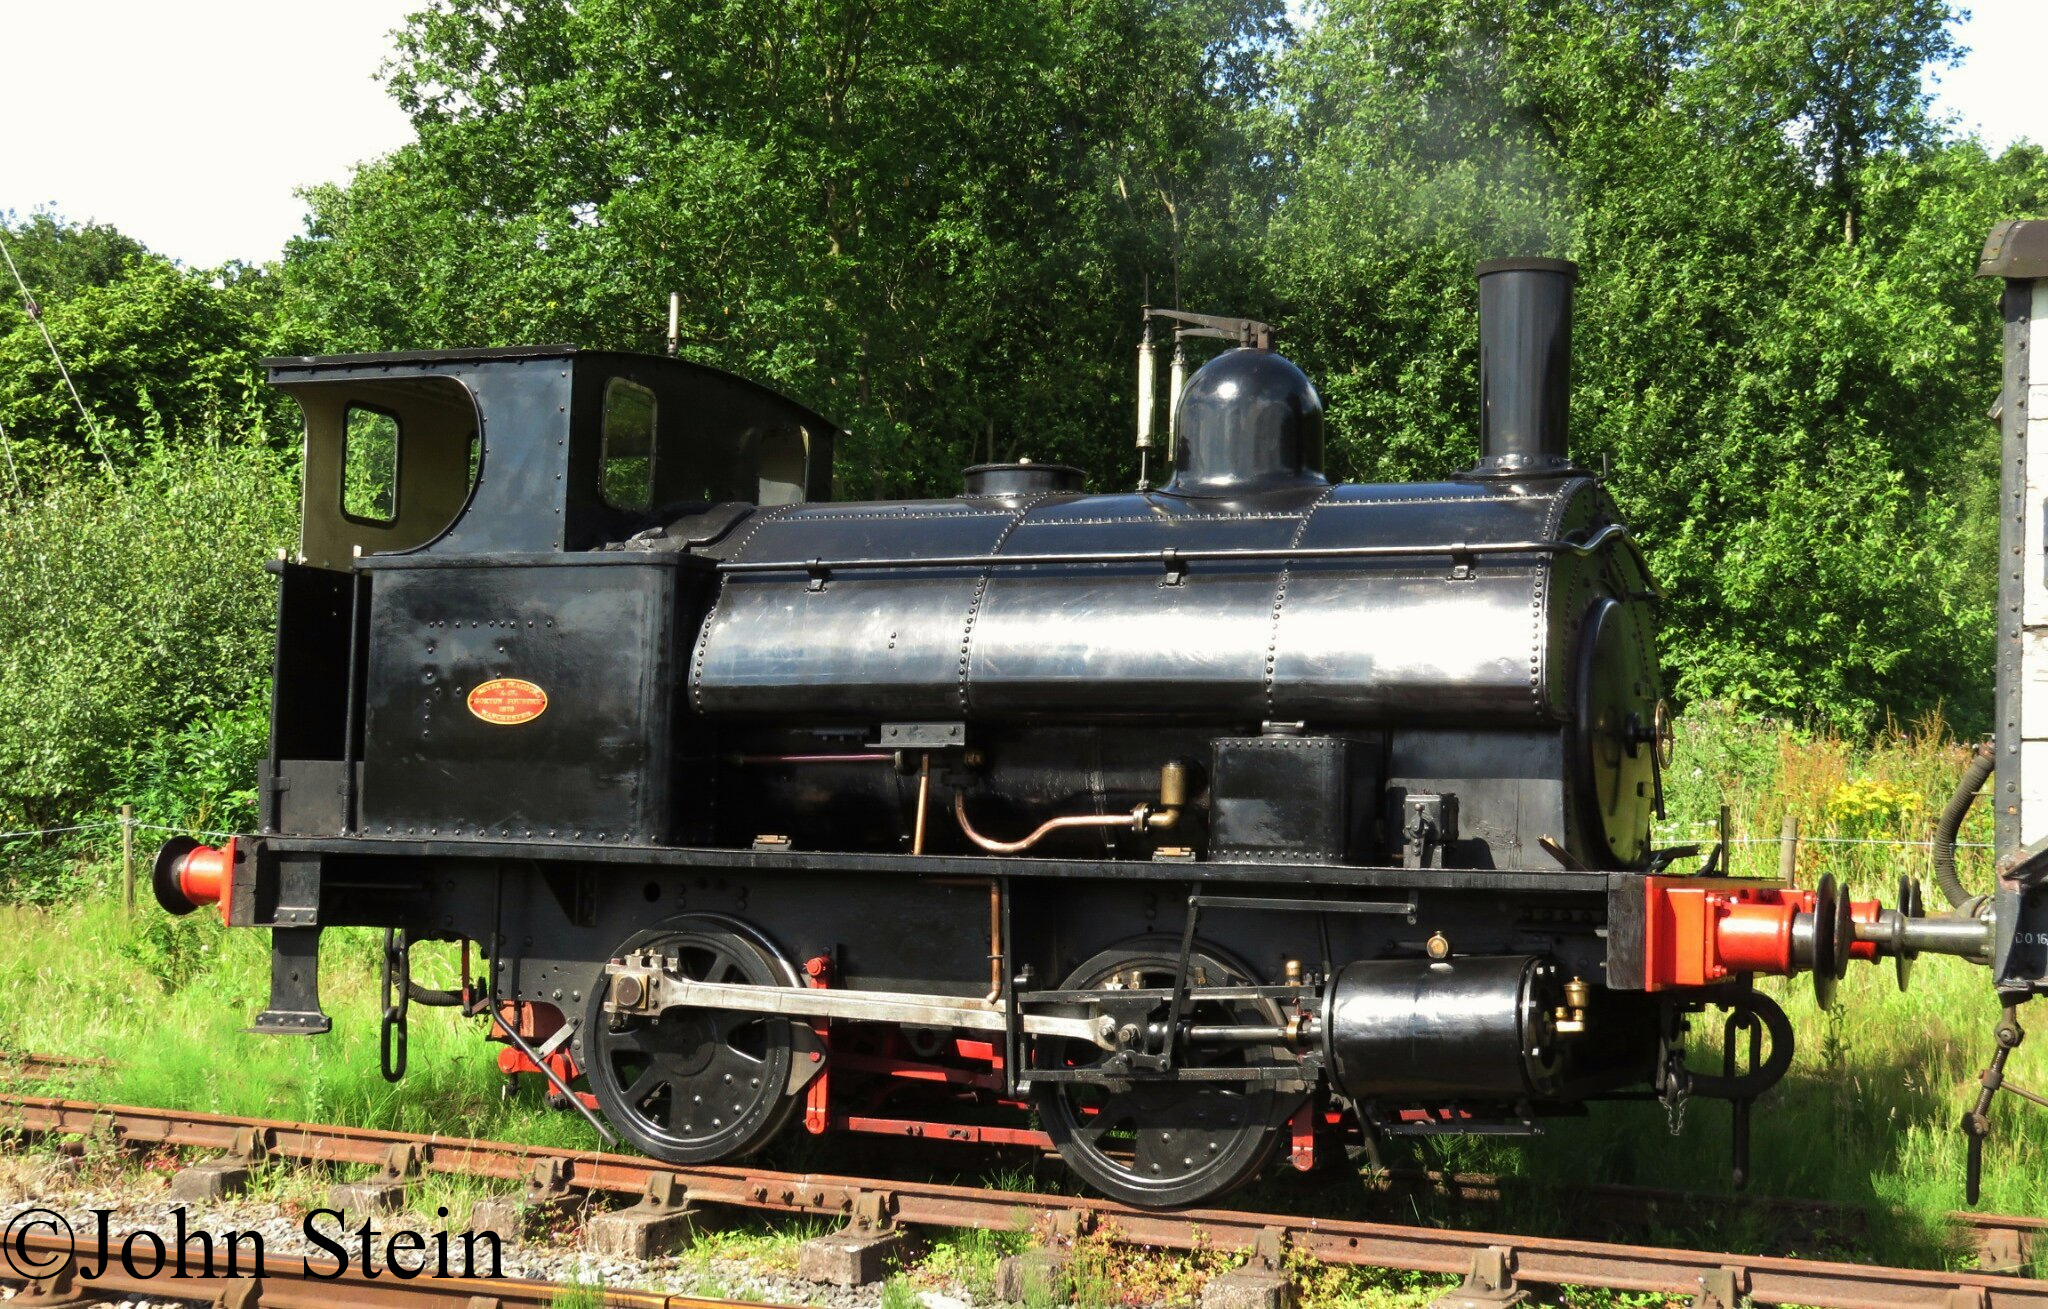 Beyer Peacock 1827 at the Foxfield Railway - July 2015.jpg